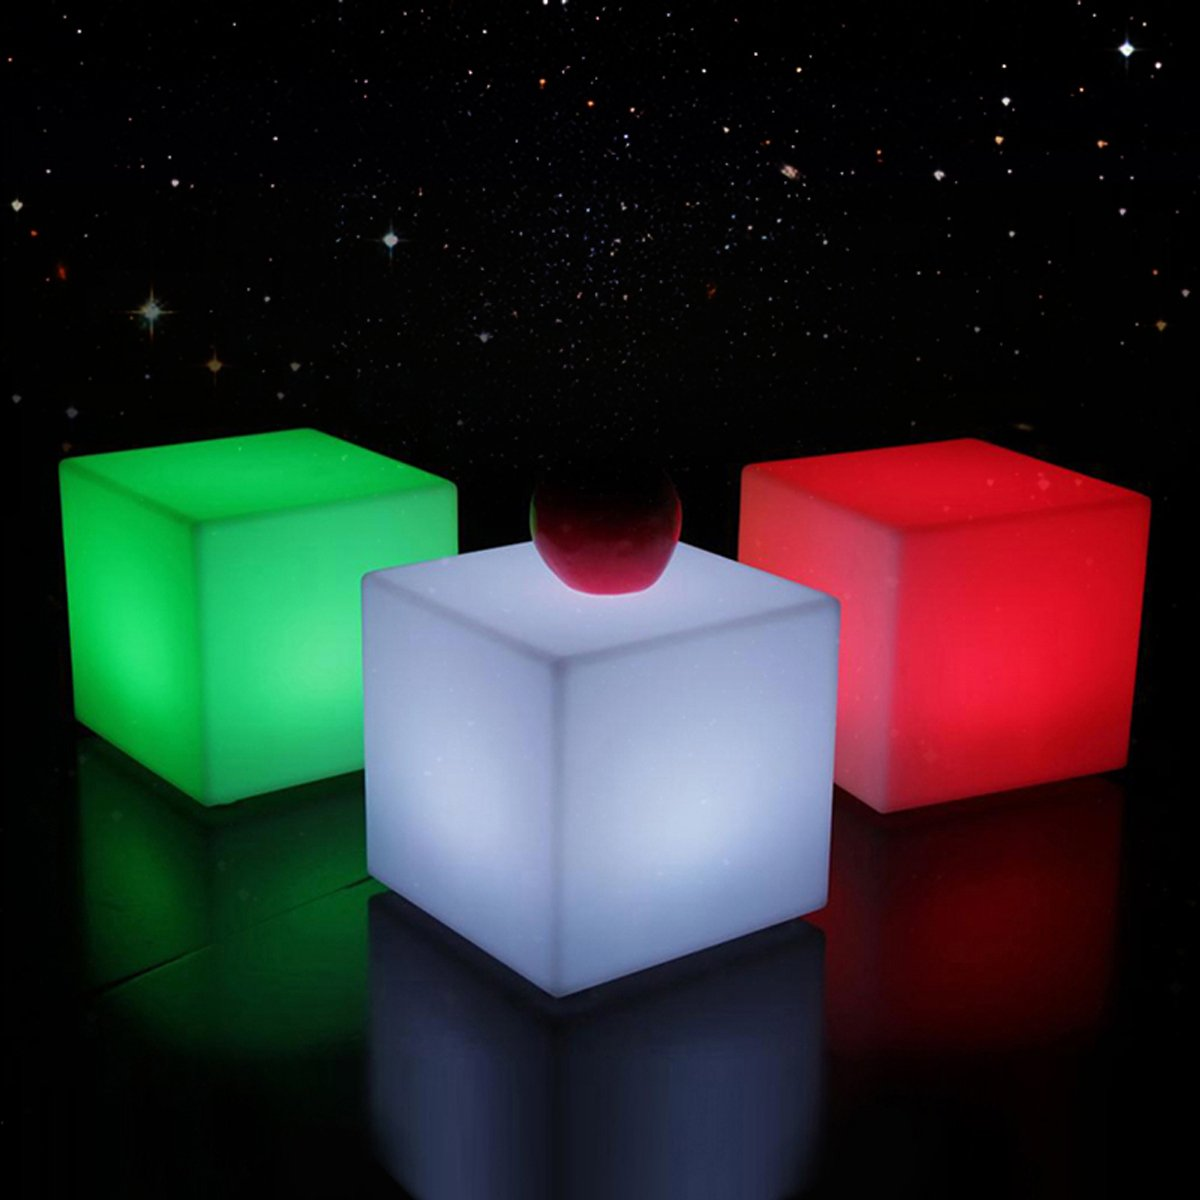 colored Lights LED Cube Squaru Quartet Decorative Table Lamp Charging Remote Control IP54 Waterproof Outdoor Garden Party Christmas Decorations